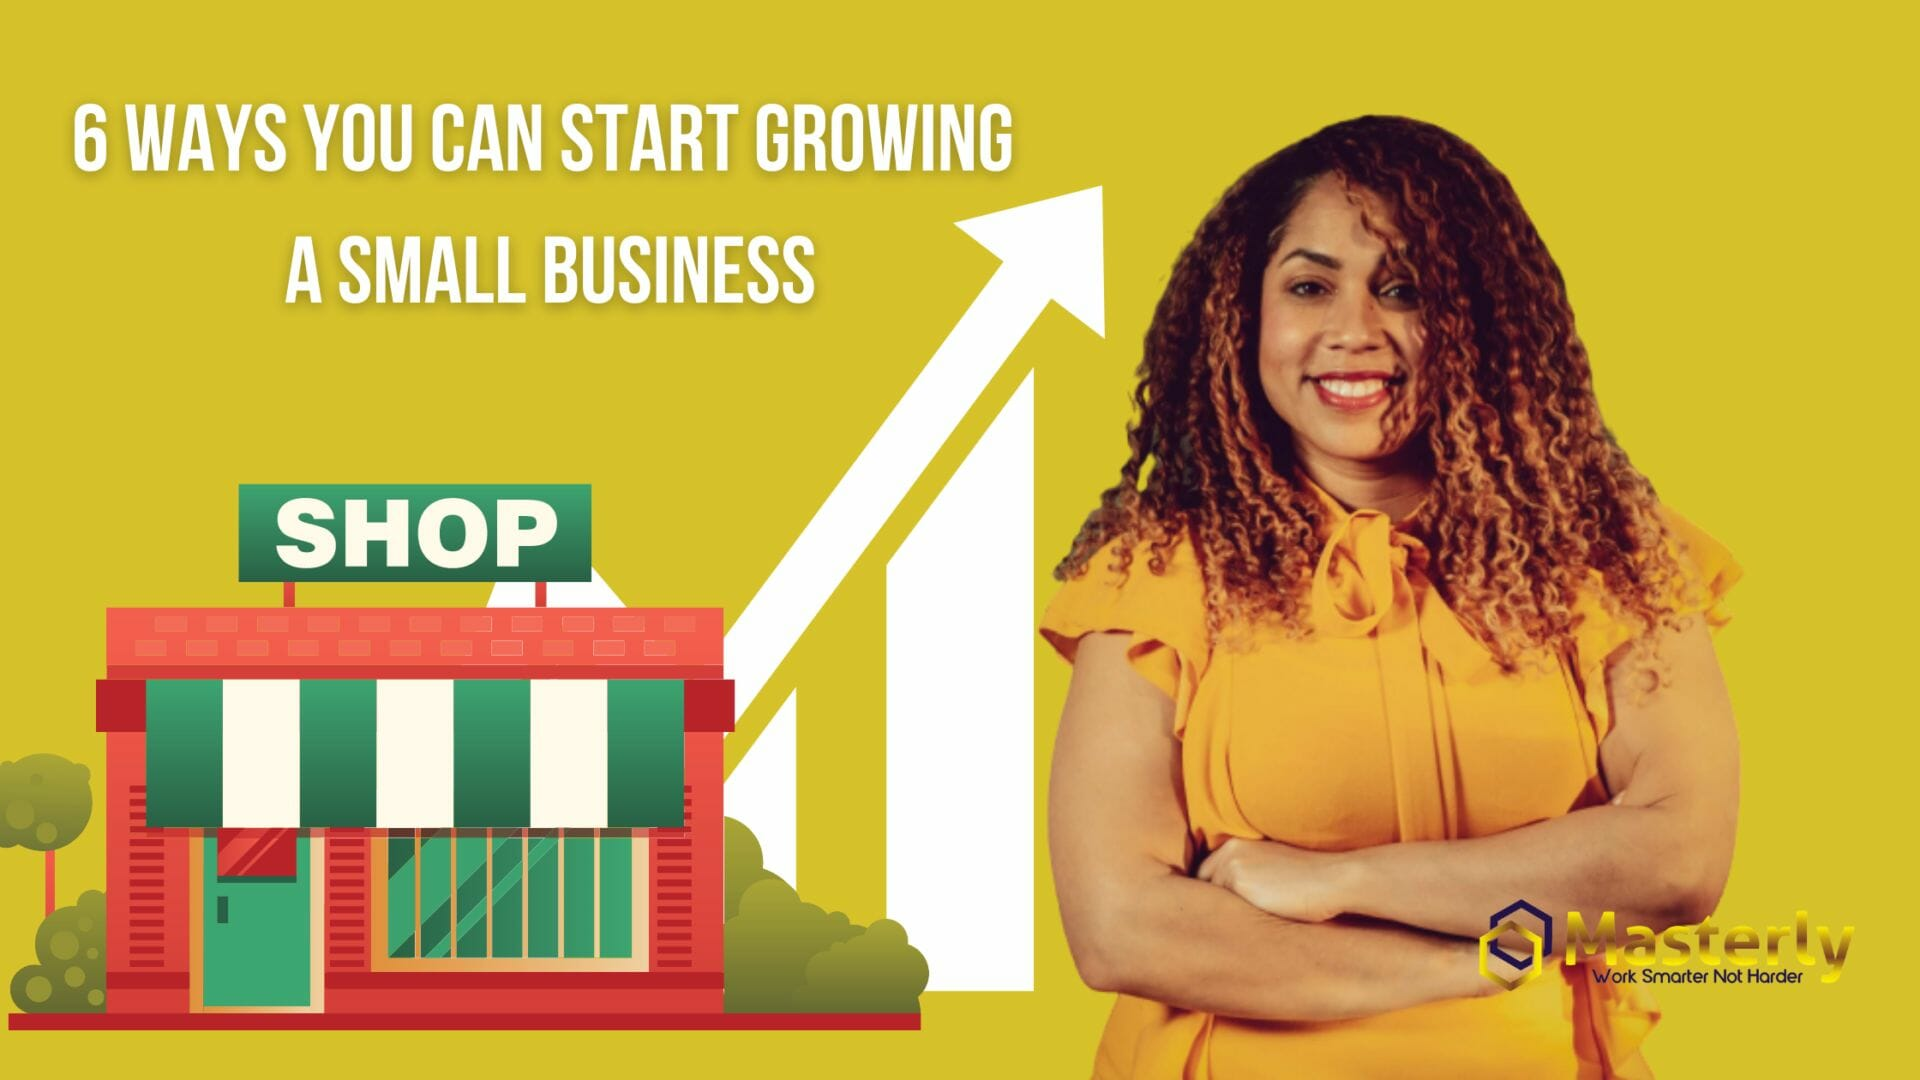 6 ways you can start growing a small business